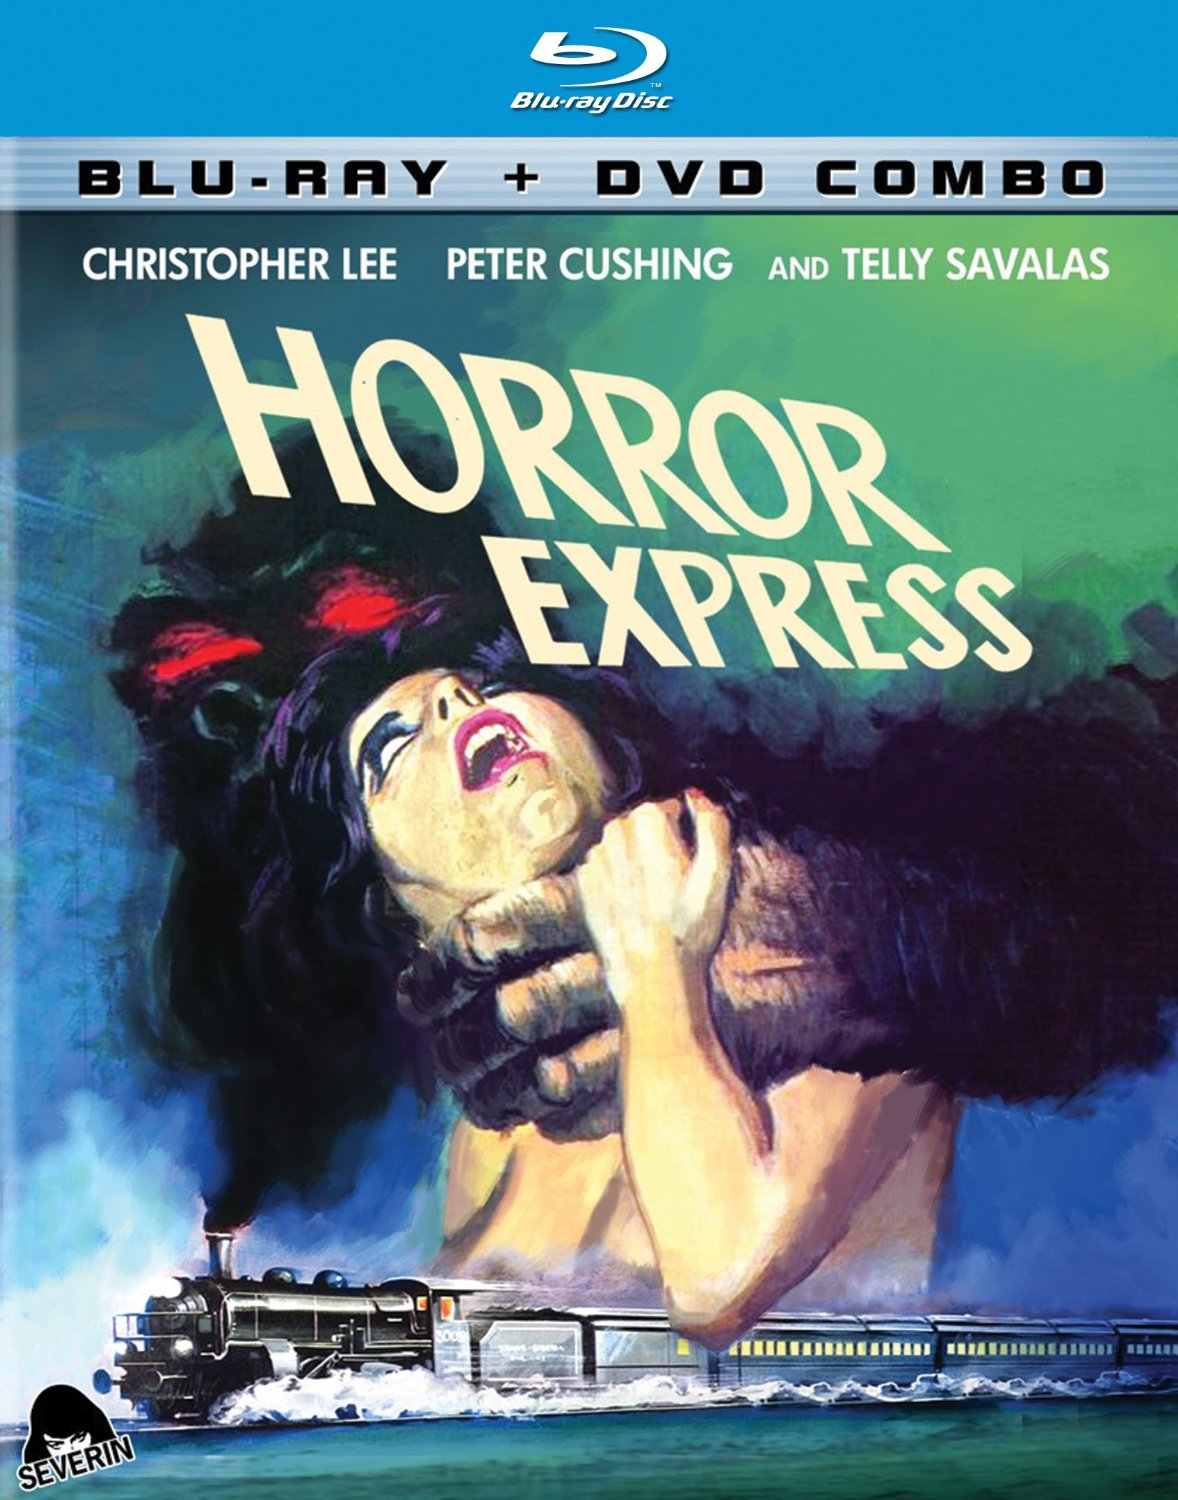 Horror Express, starring Peter Cushing, Christopher Lee, Telly Savalas